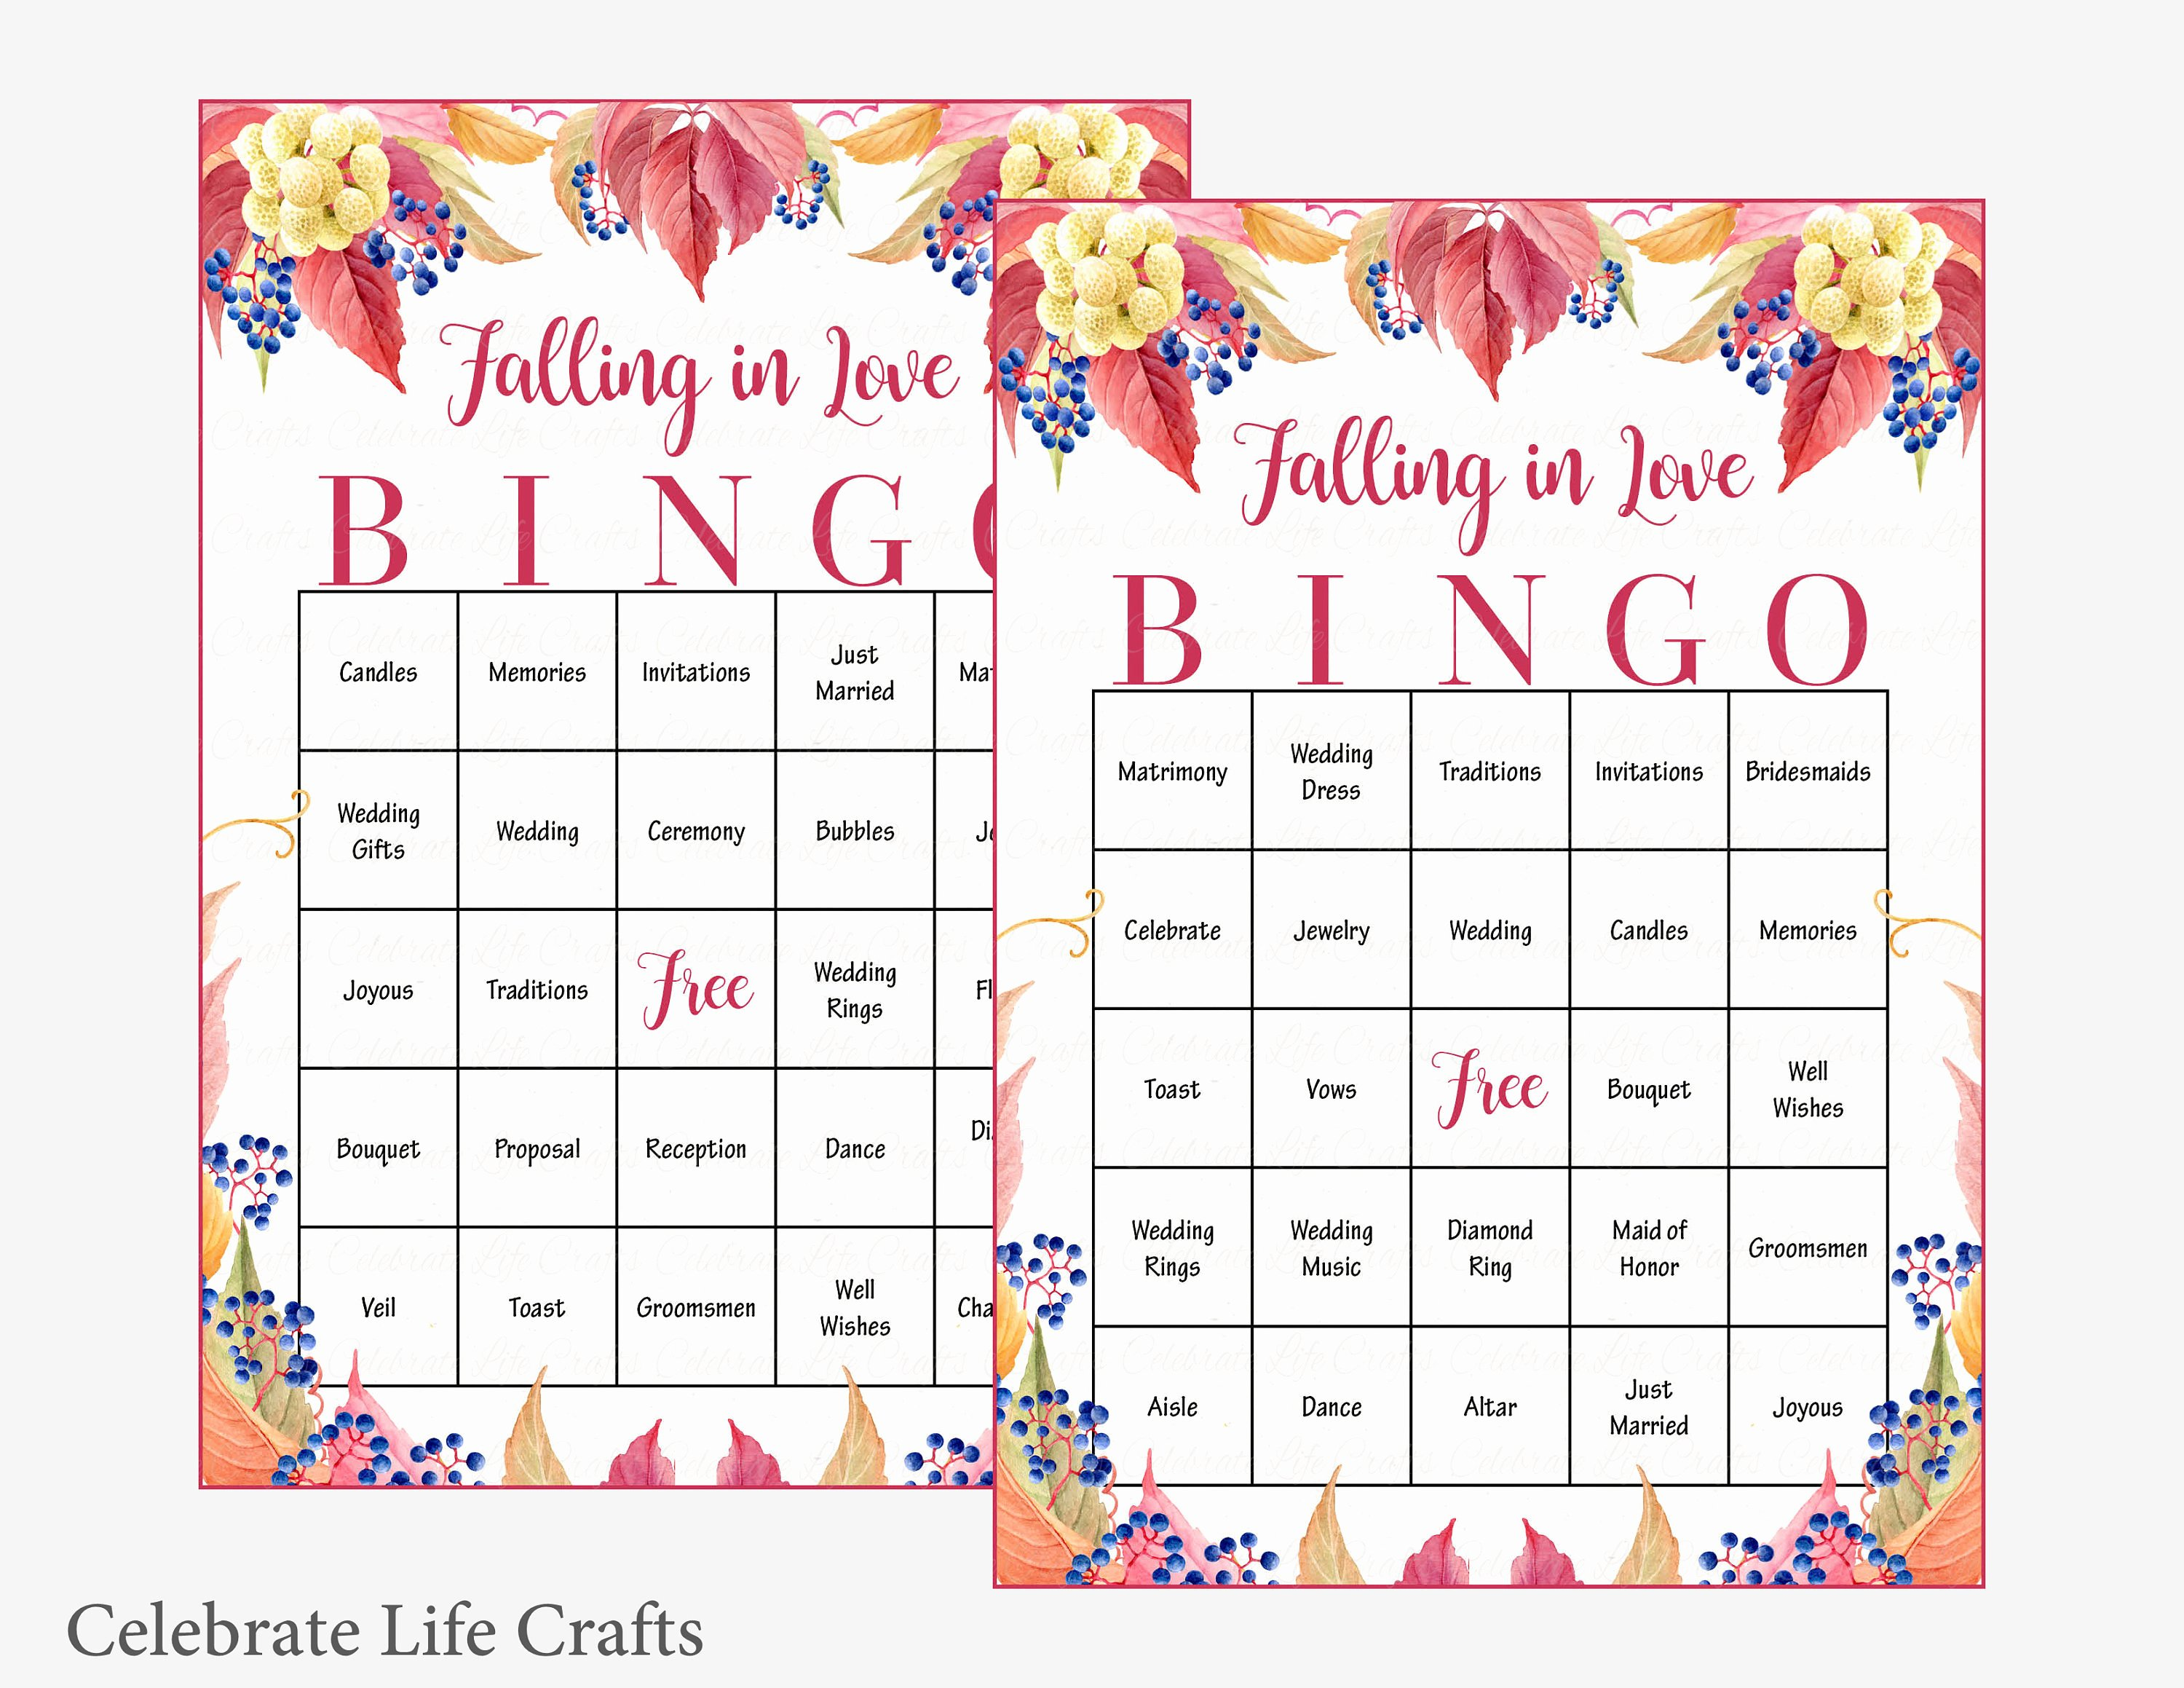 Bridal Shower Bingo Template Fresh 100 Falling In Love Wedding Bingo Cards Fall Bridal Shower